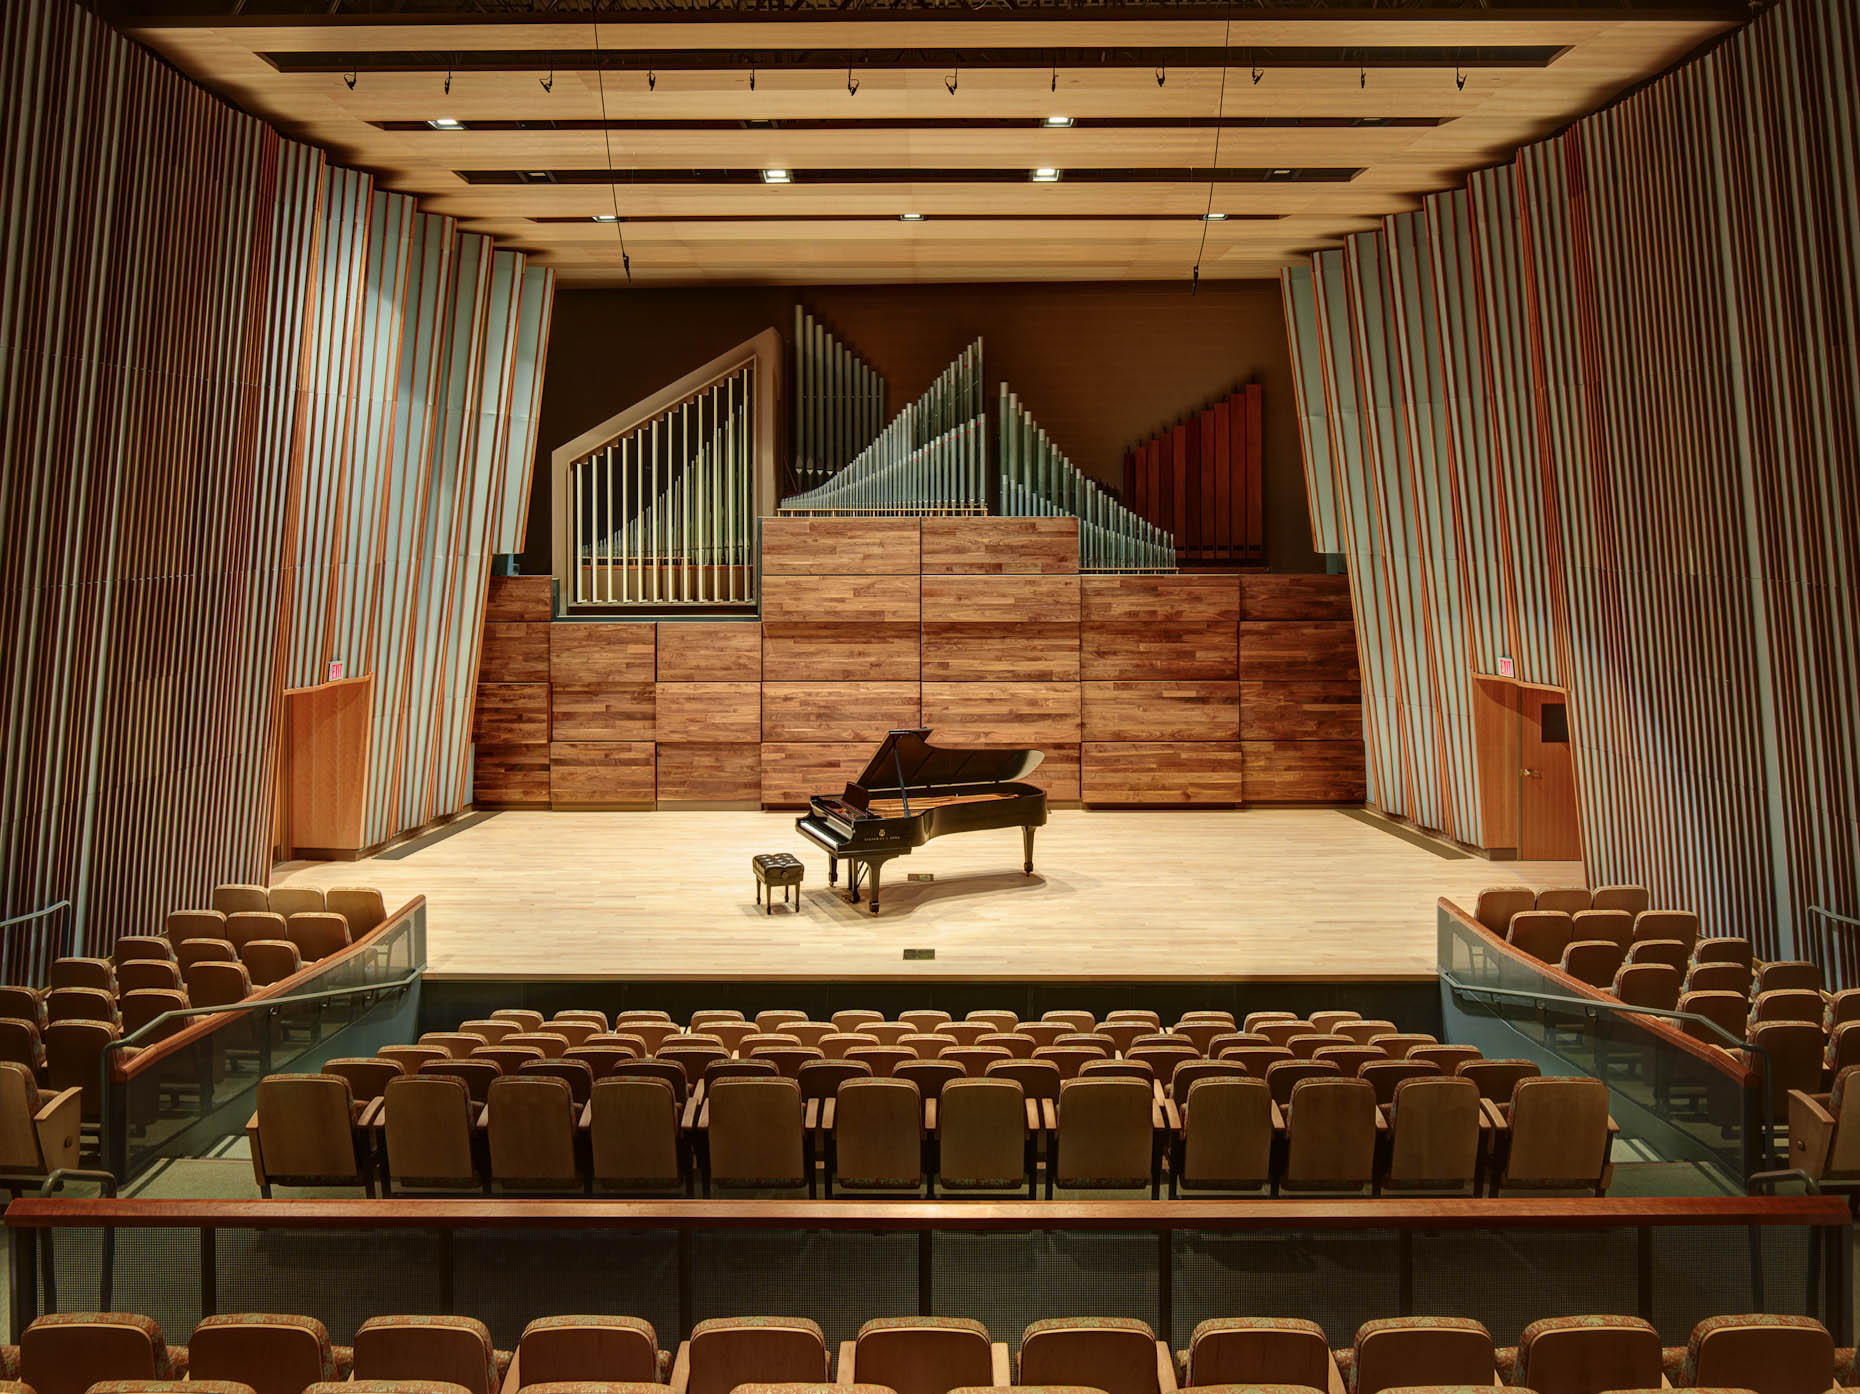 Wright State University Schuster Concert Hall by H3 photographed by Brad Feinknopf based in Columbus